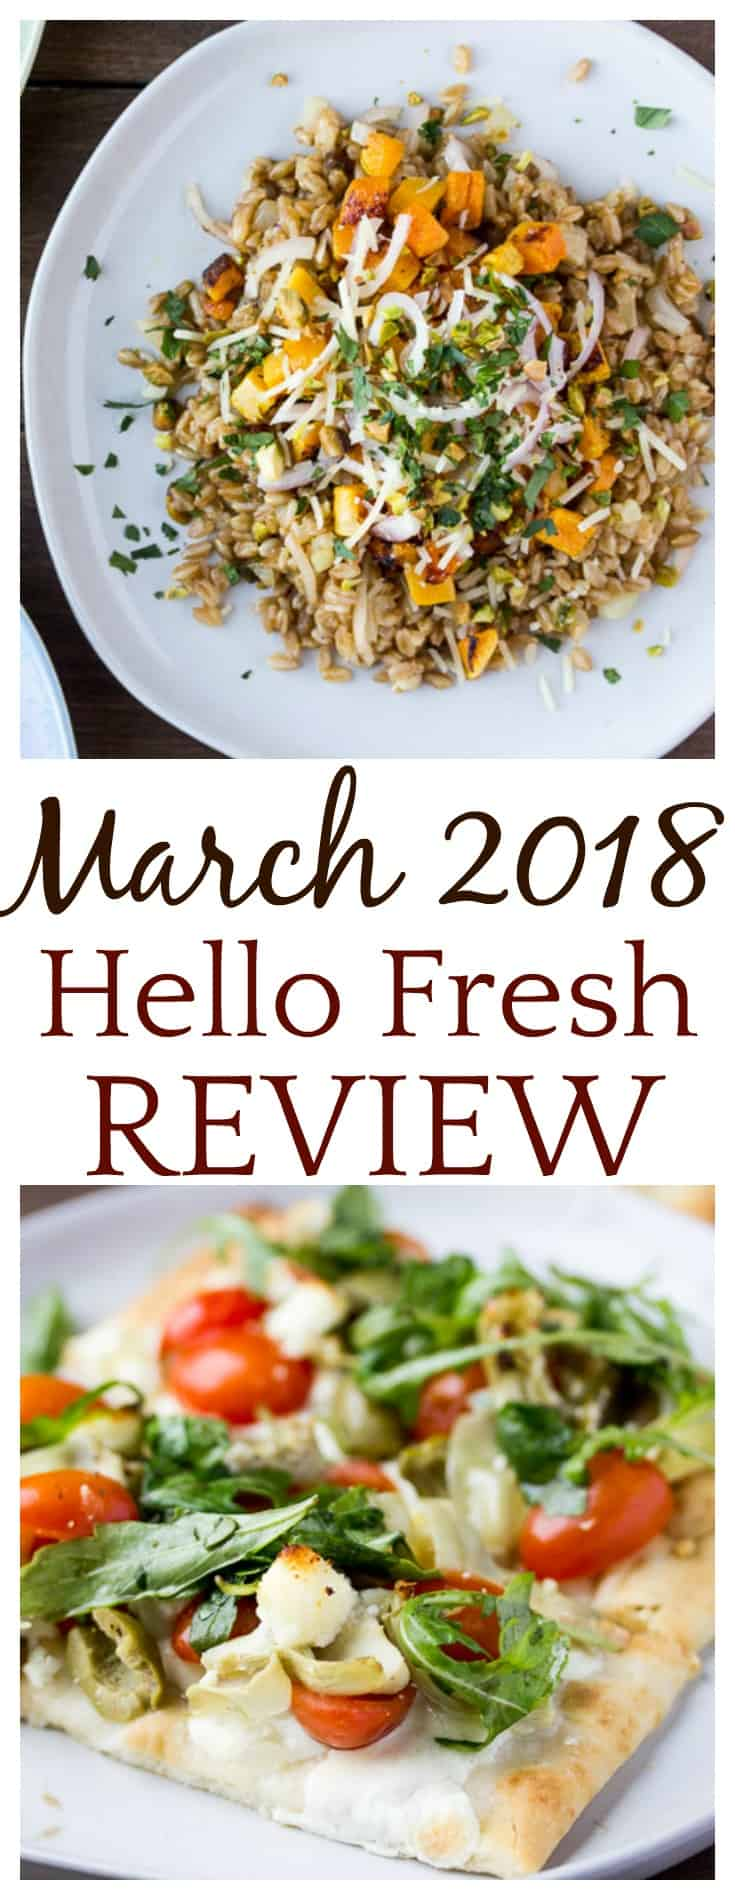 In this March 2018 Hello Fresh Review, things didn't go quite as planned, but the food was delicious! I ordered 3 vegetarian meals for this review. | Vegetarian Hello Fresh Review | #hellofresh #hellofreshreview #vegetarian #vegetarianhellofresh #hellofreshmeals